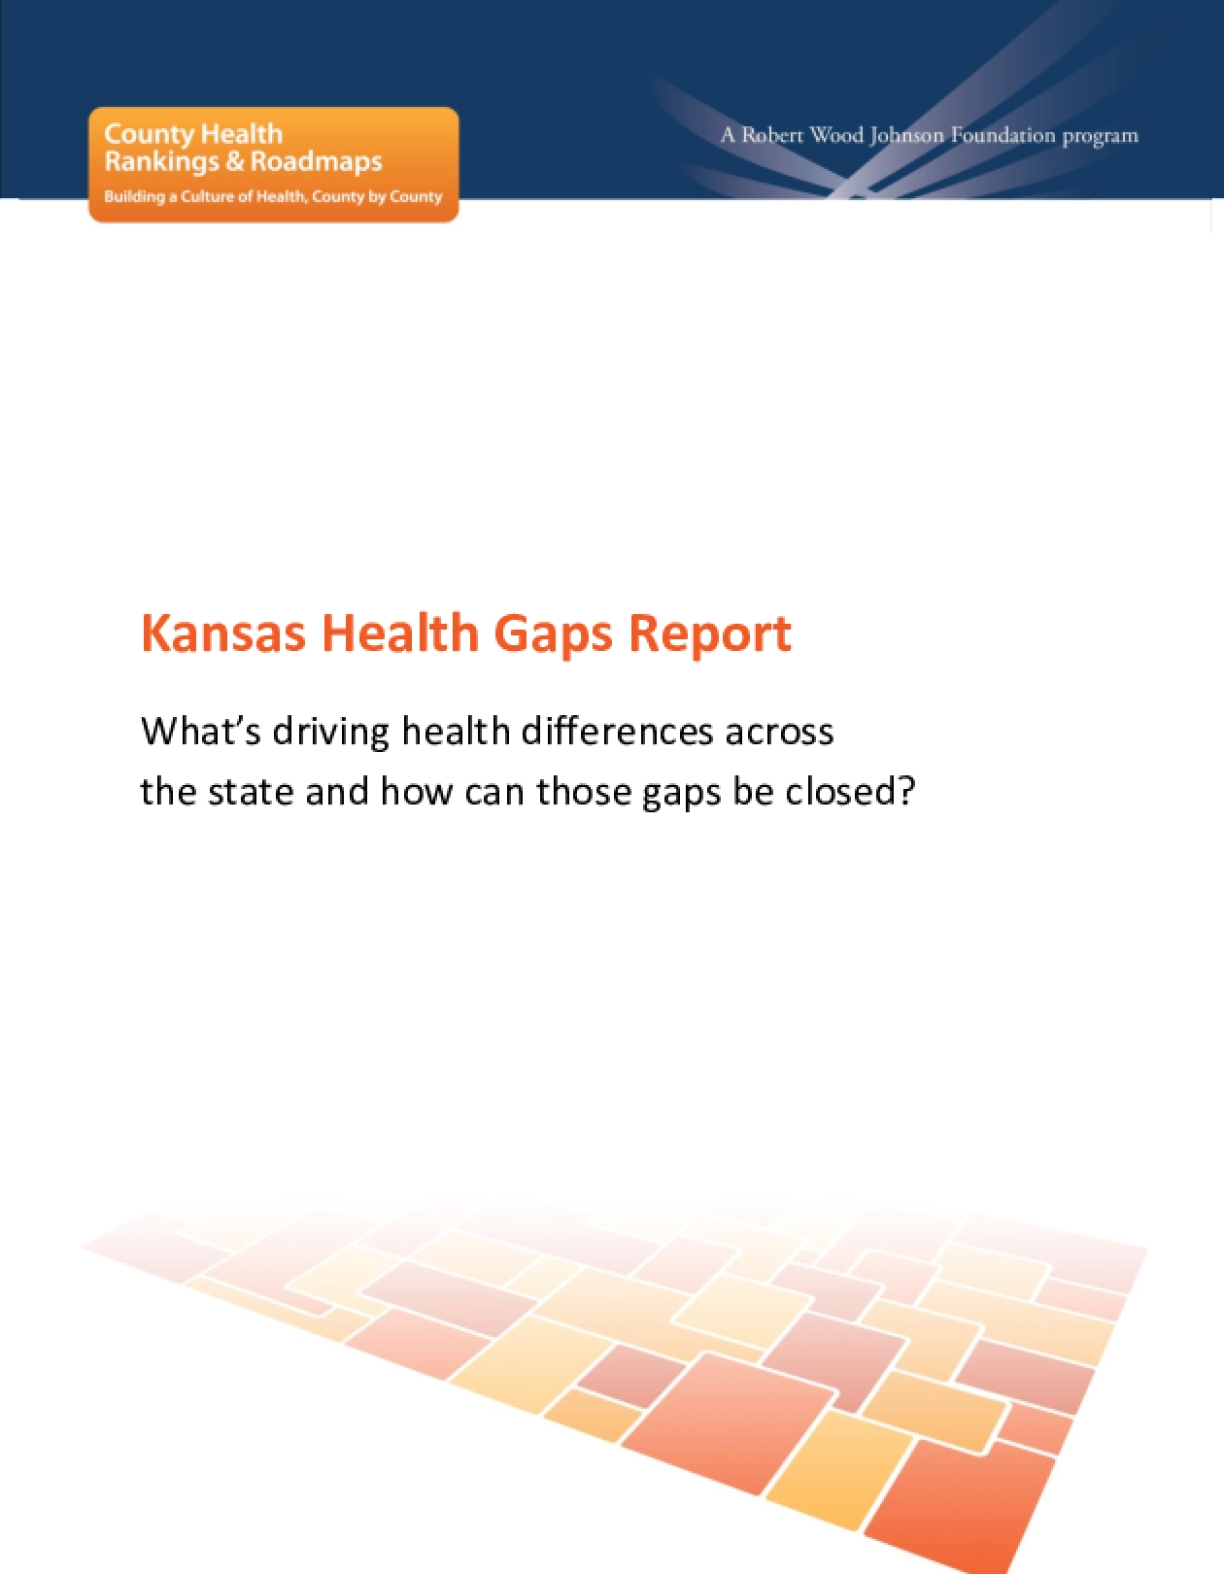 Kansas Health Gaps Report: What's Driving Health Differences Across the State and How Can Those Gaps Be Closed?